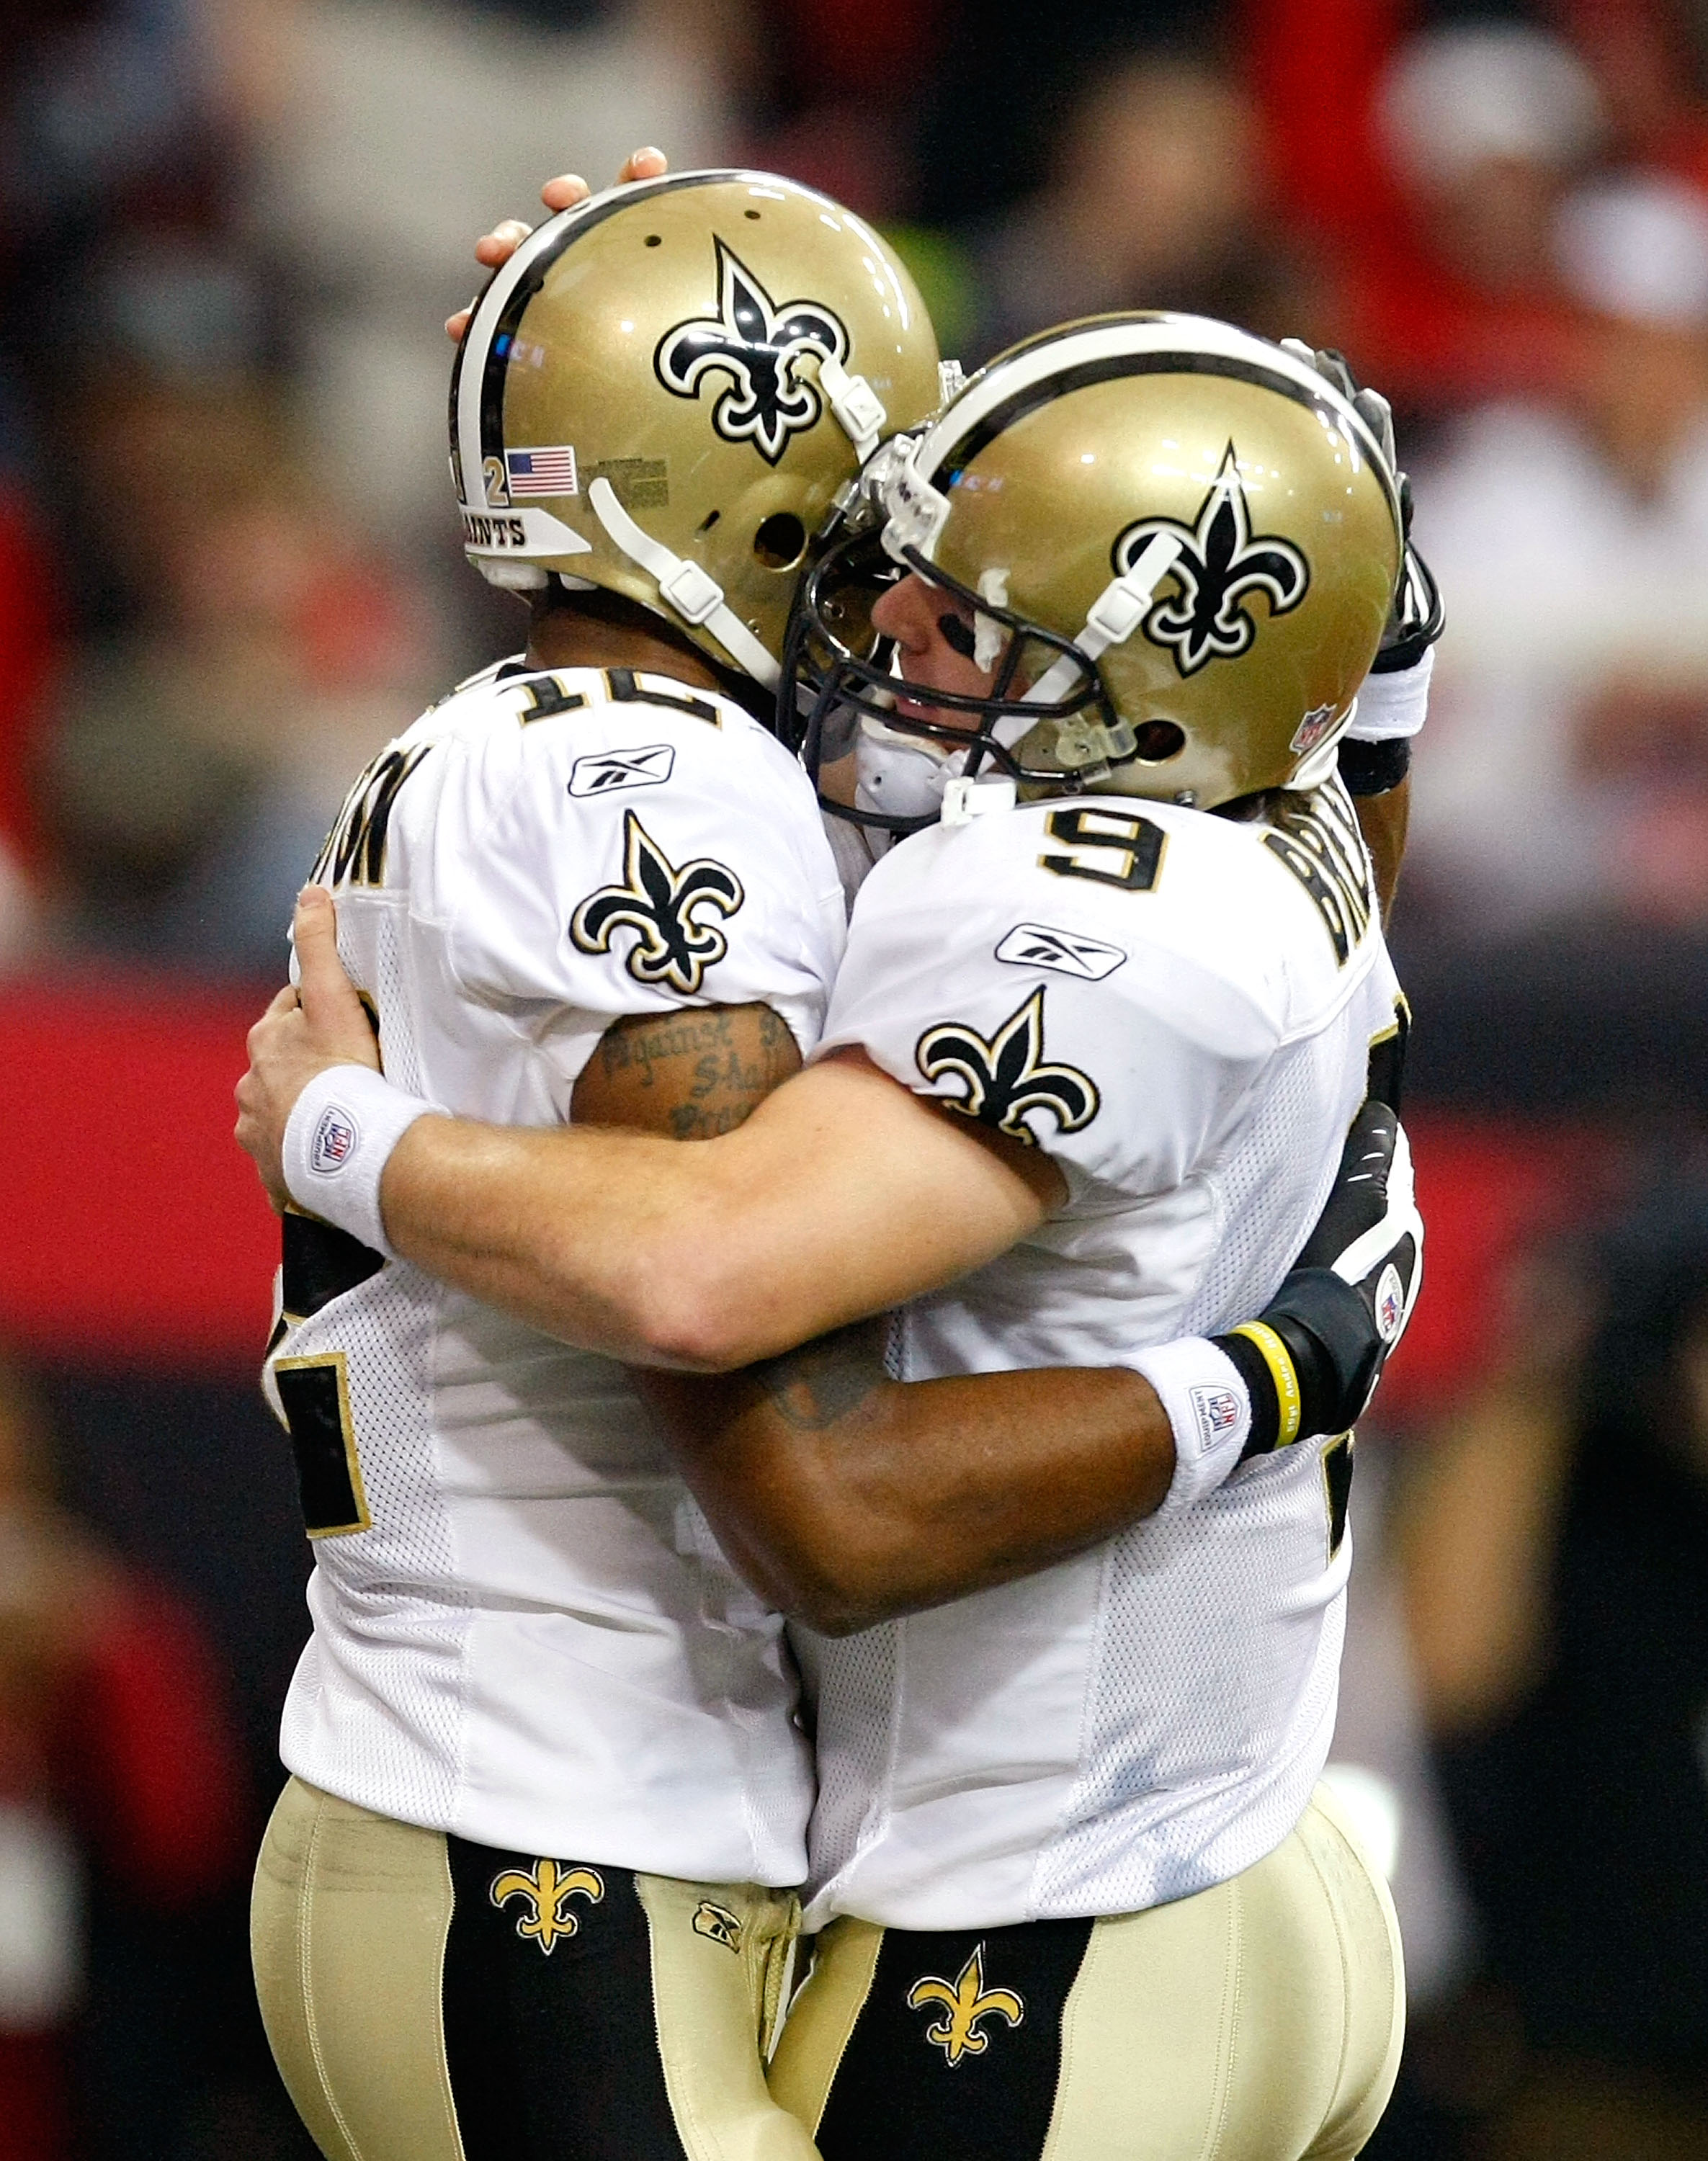 ATLANTA - DECEMBER 13:  Marques Colston #12 and quarterback Drew Brees #9 (R) of the New Orleans Saints celebrate Colston's 3-yard touchdown reception in the second quarter against the Atlanta Falcons at Georgia Dome on December 13, 2009 in Atlanta, Georg